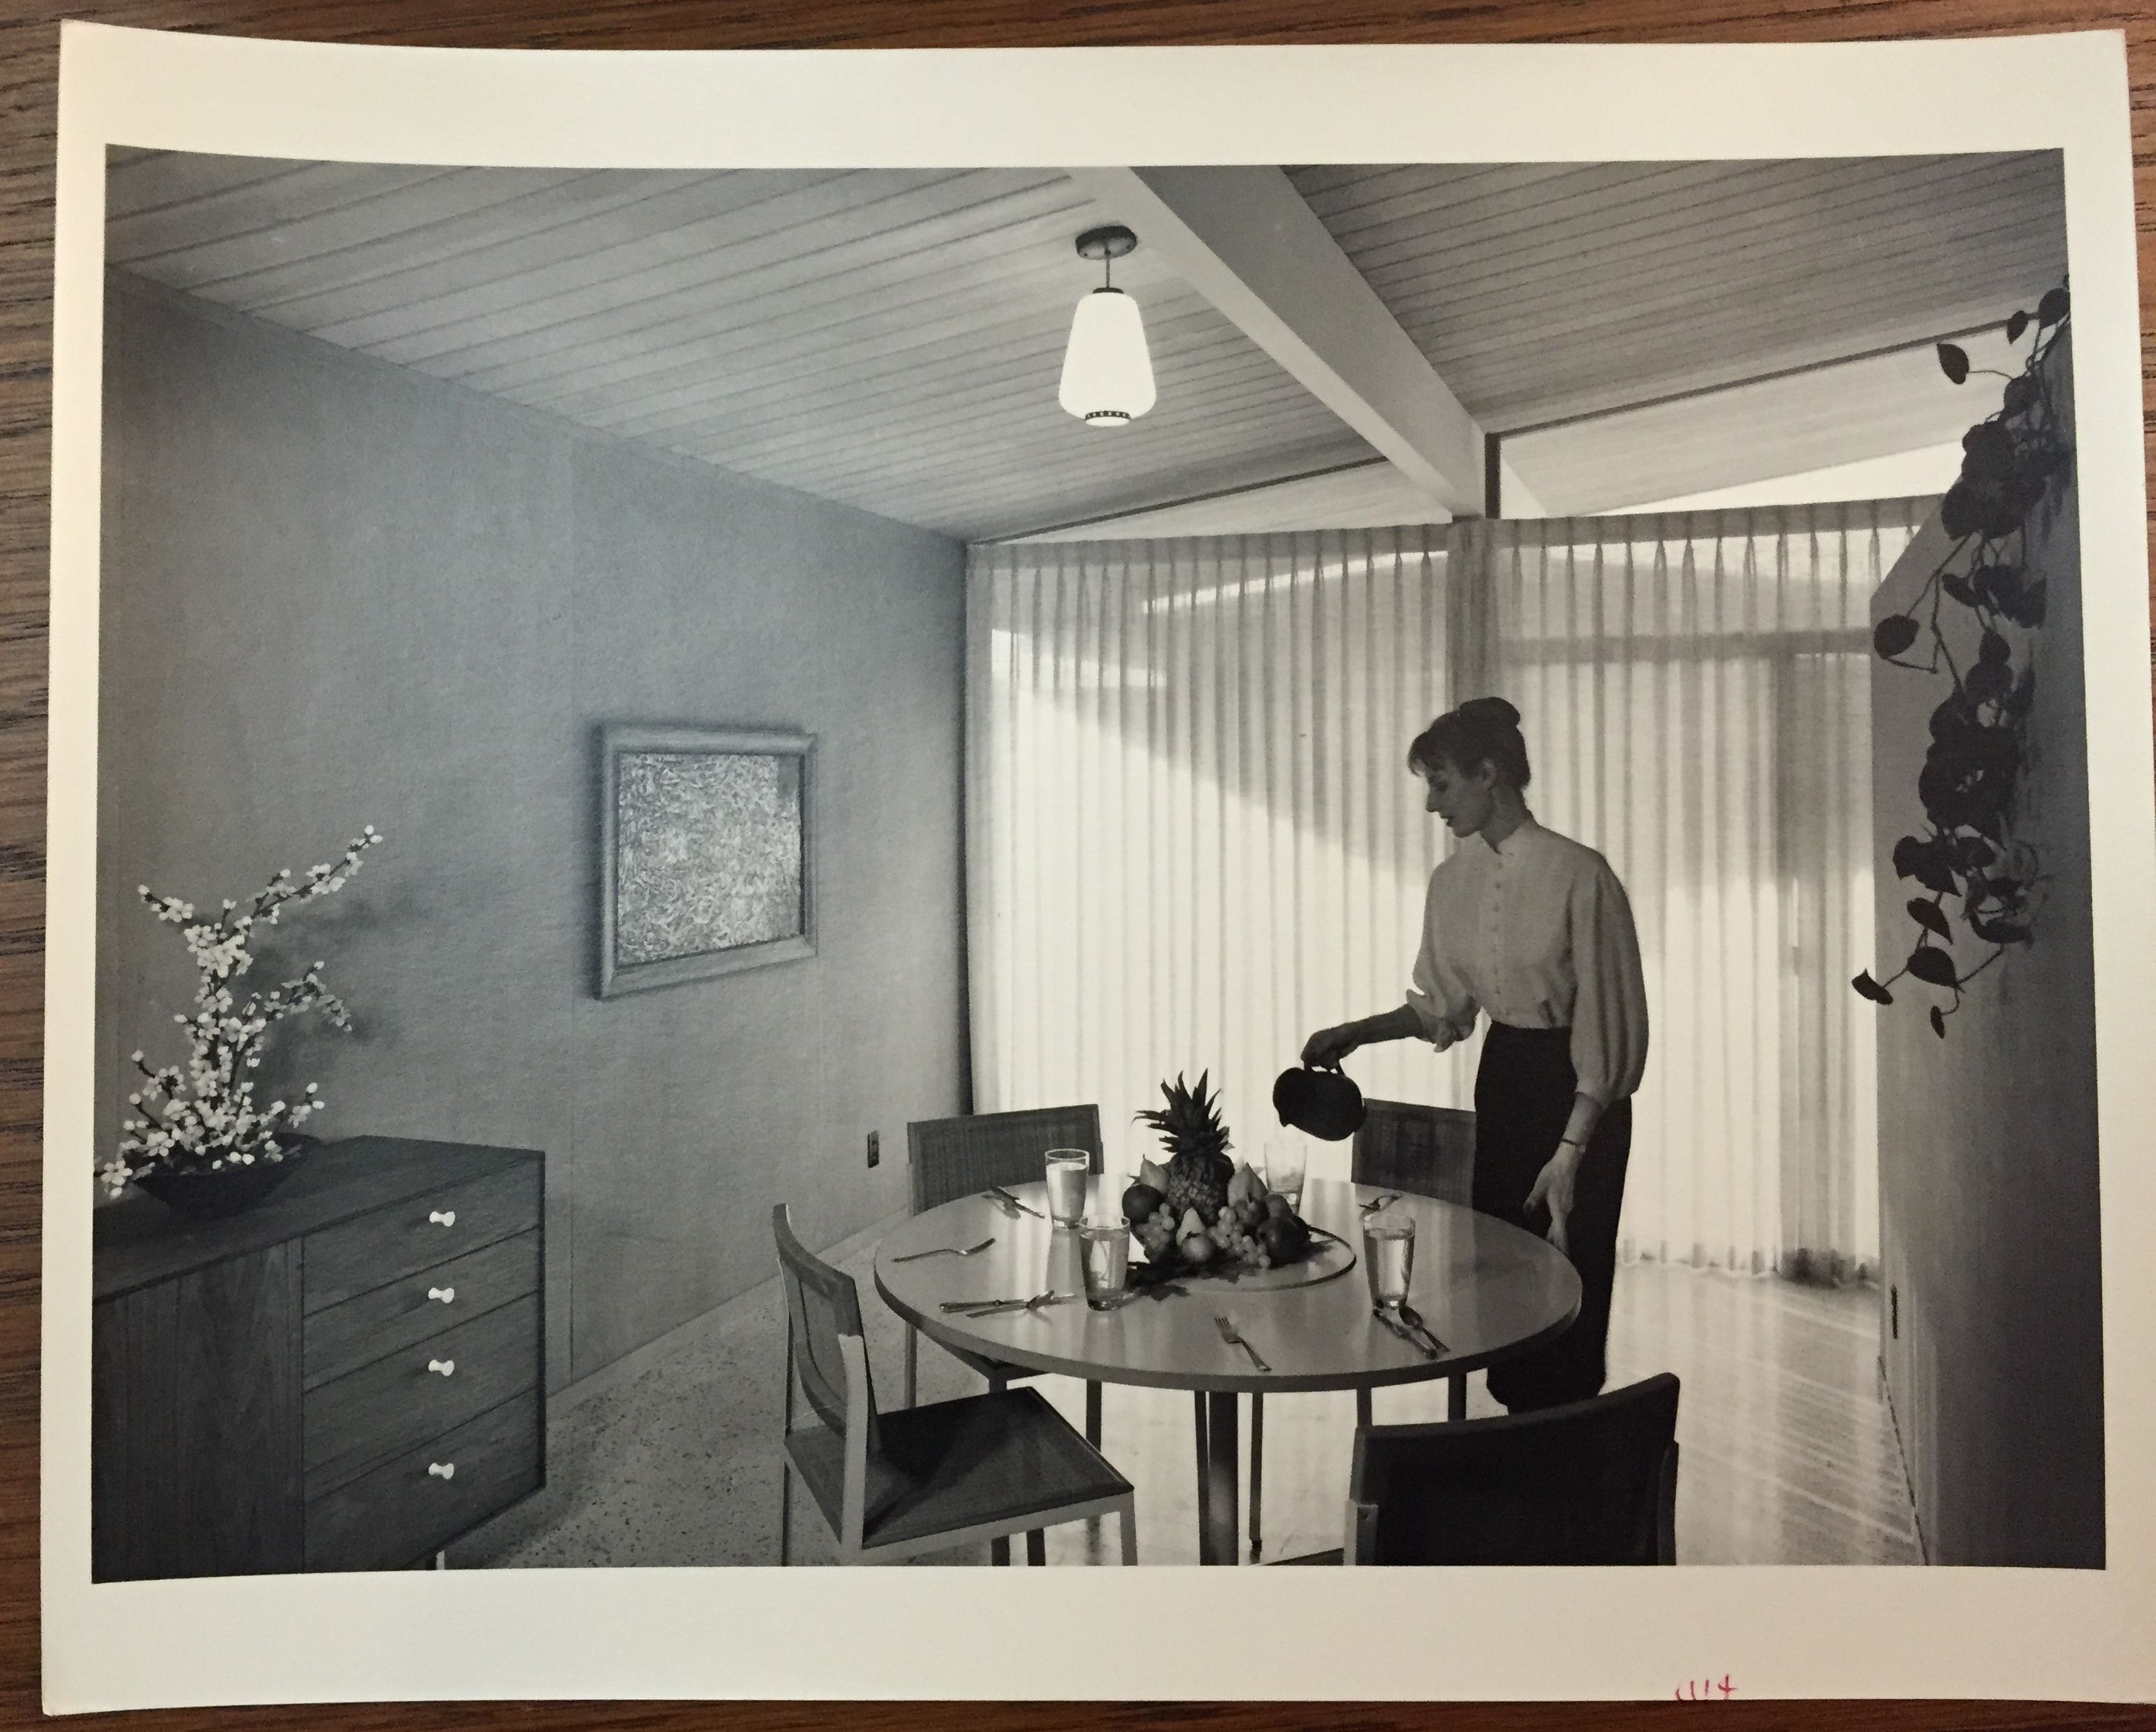 eichler homes interior photograph of dining room (original at ucla